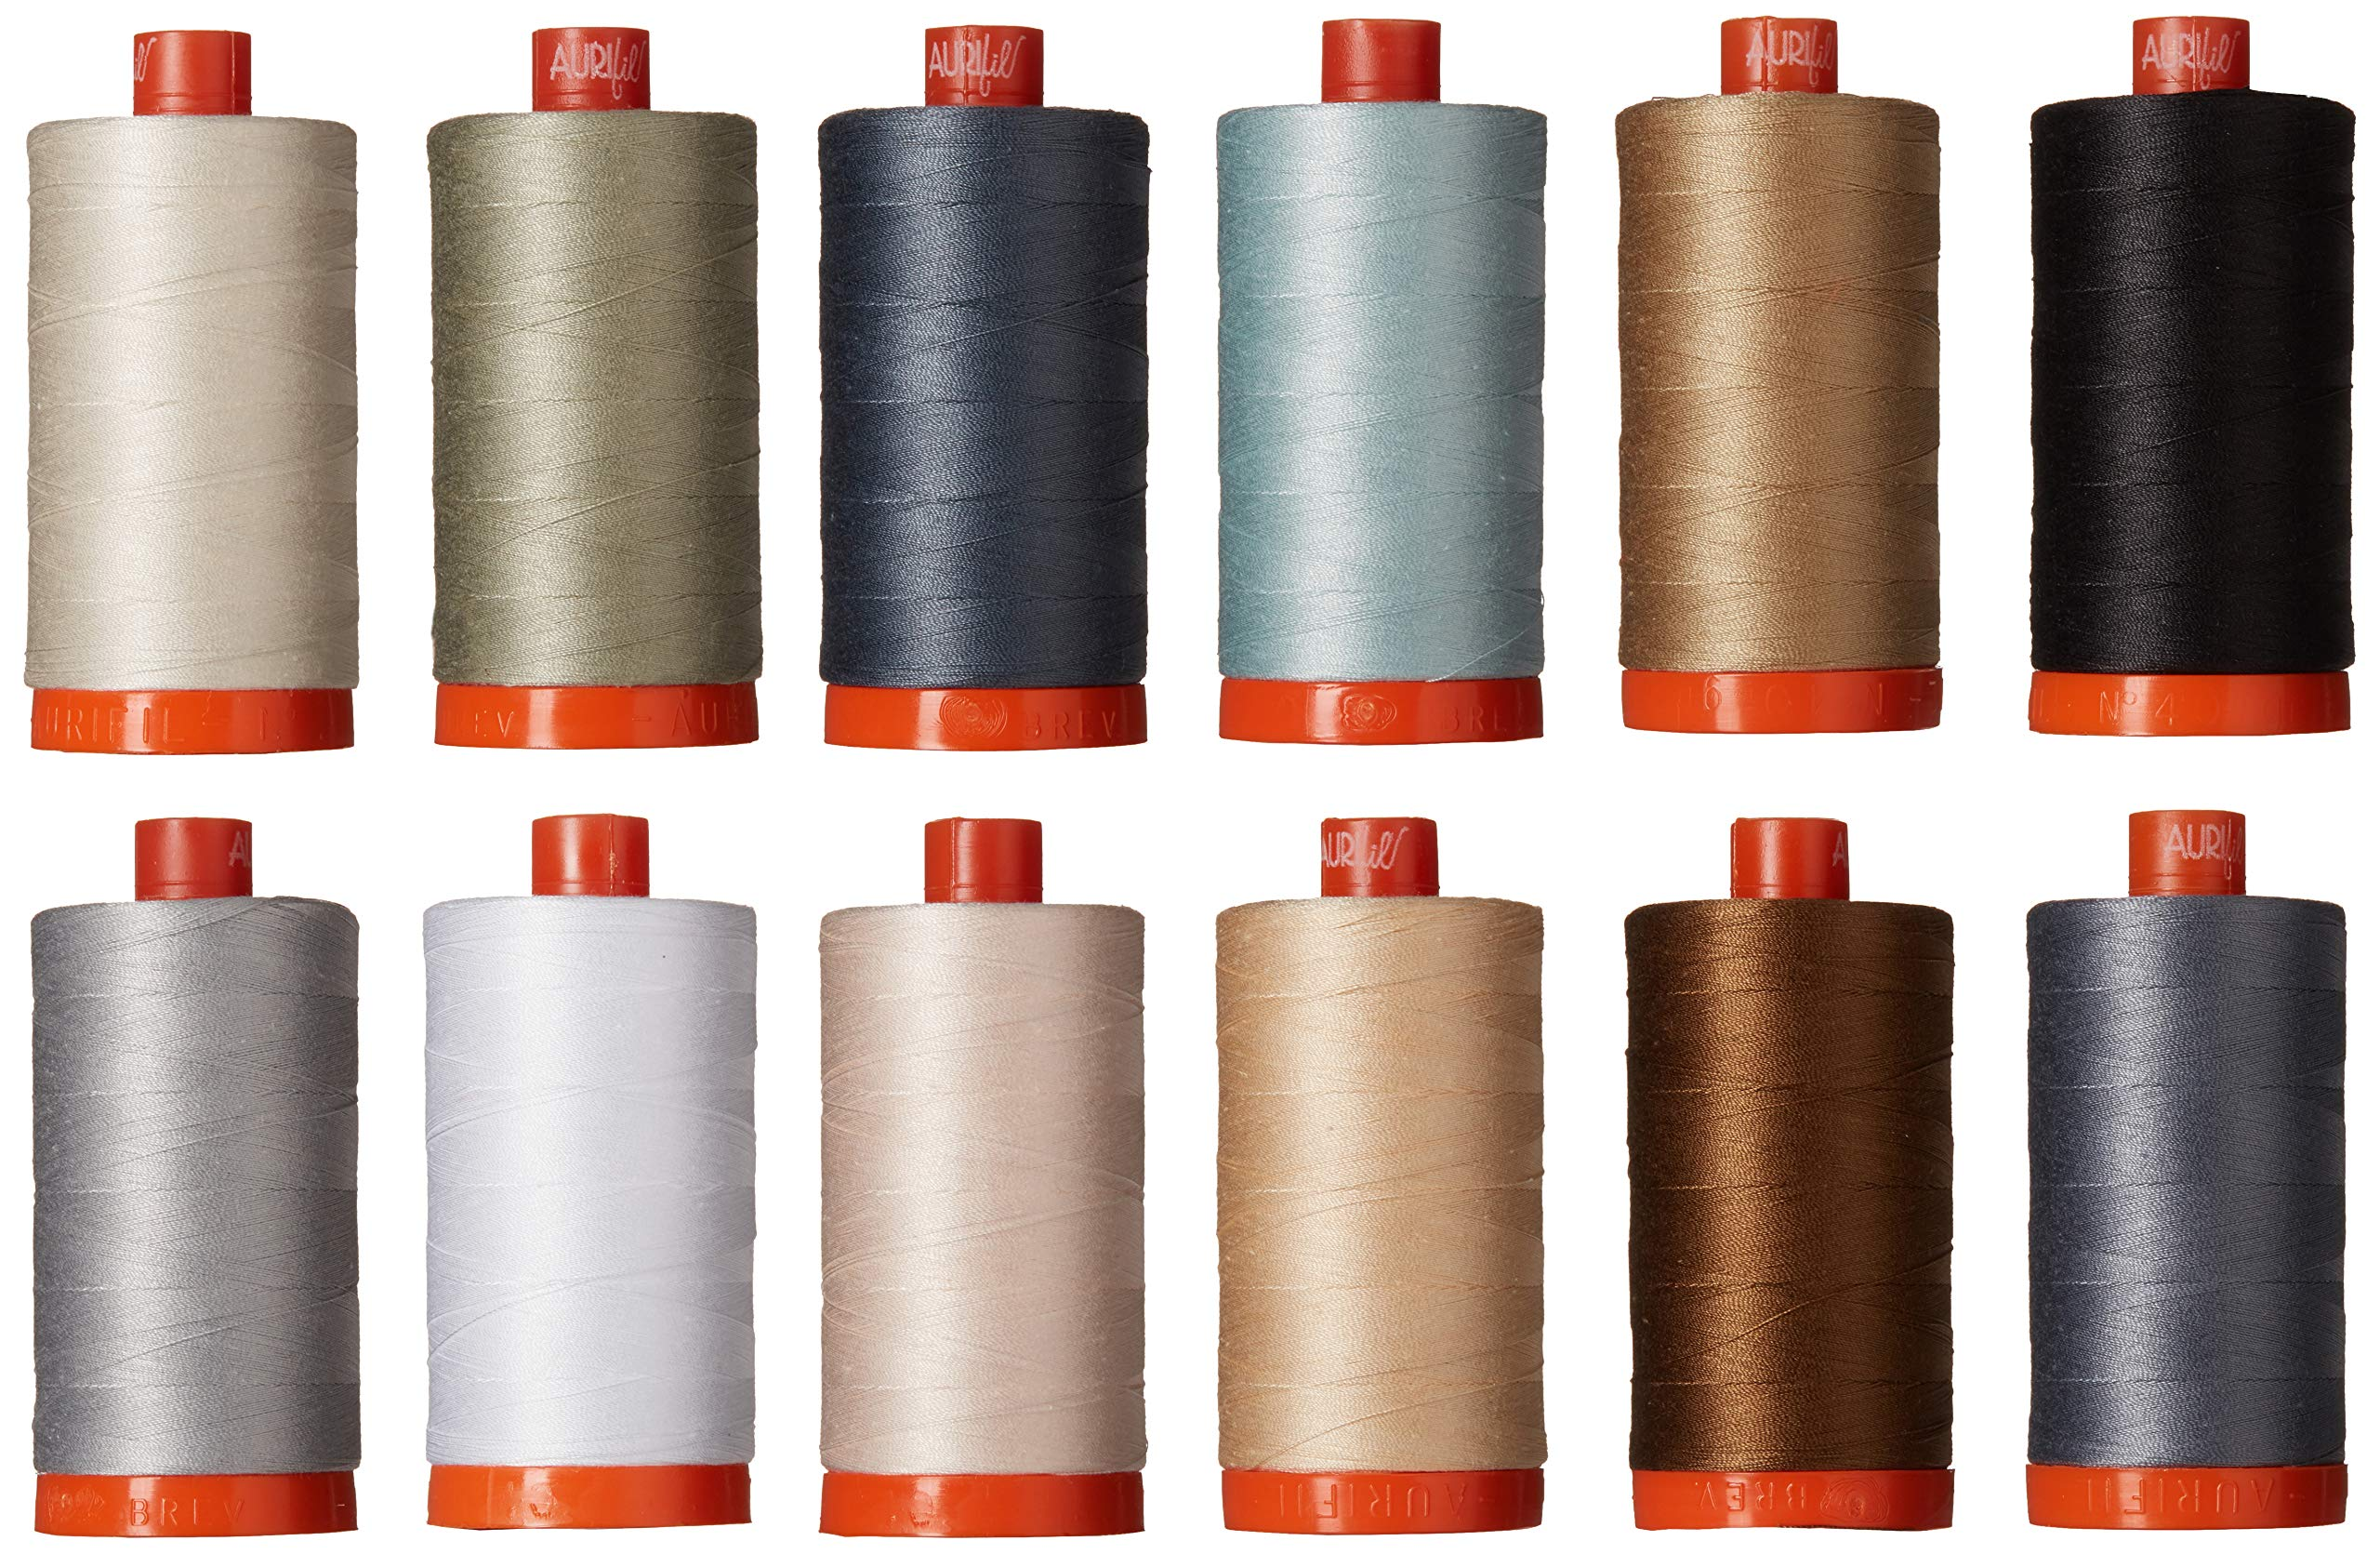 Christa Quilts Piece and Quilt Neutrals Aurifil Thread Kit 12 Large Spools 50 Weight CW50PQN12 by Aurifil